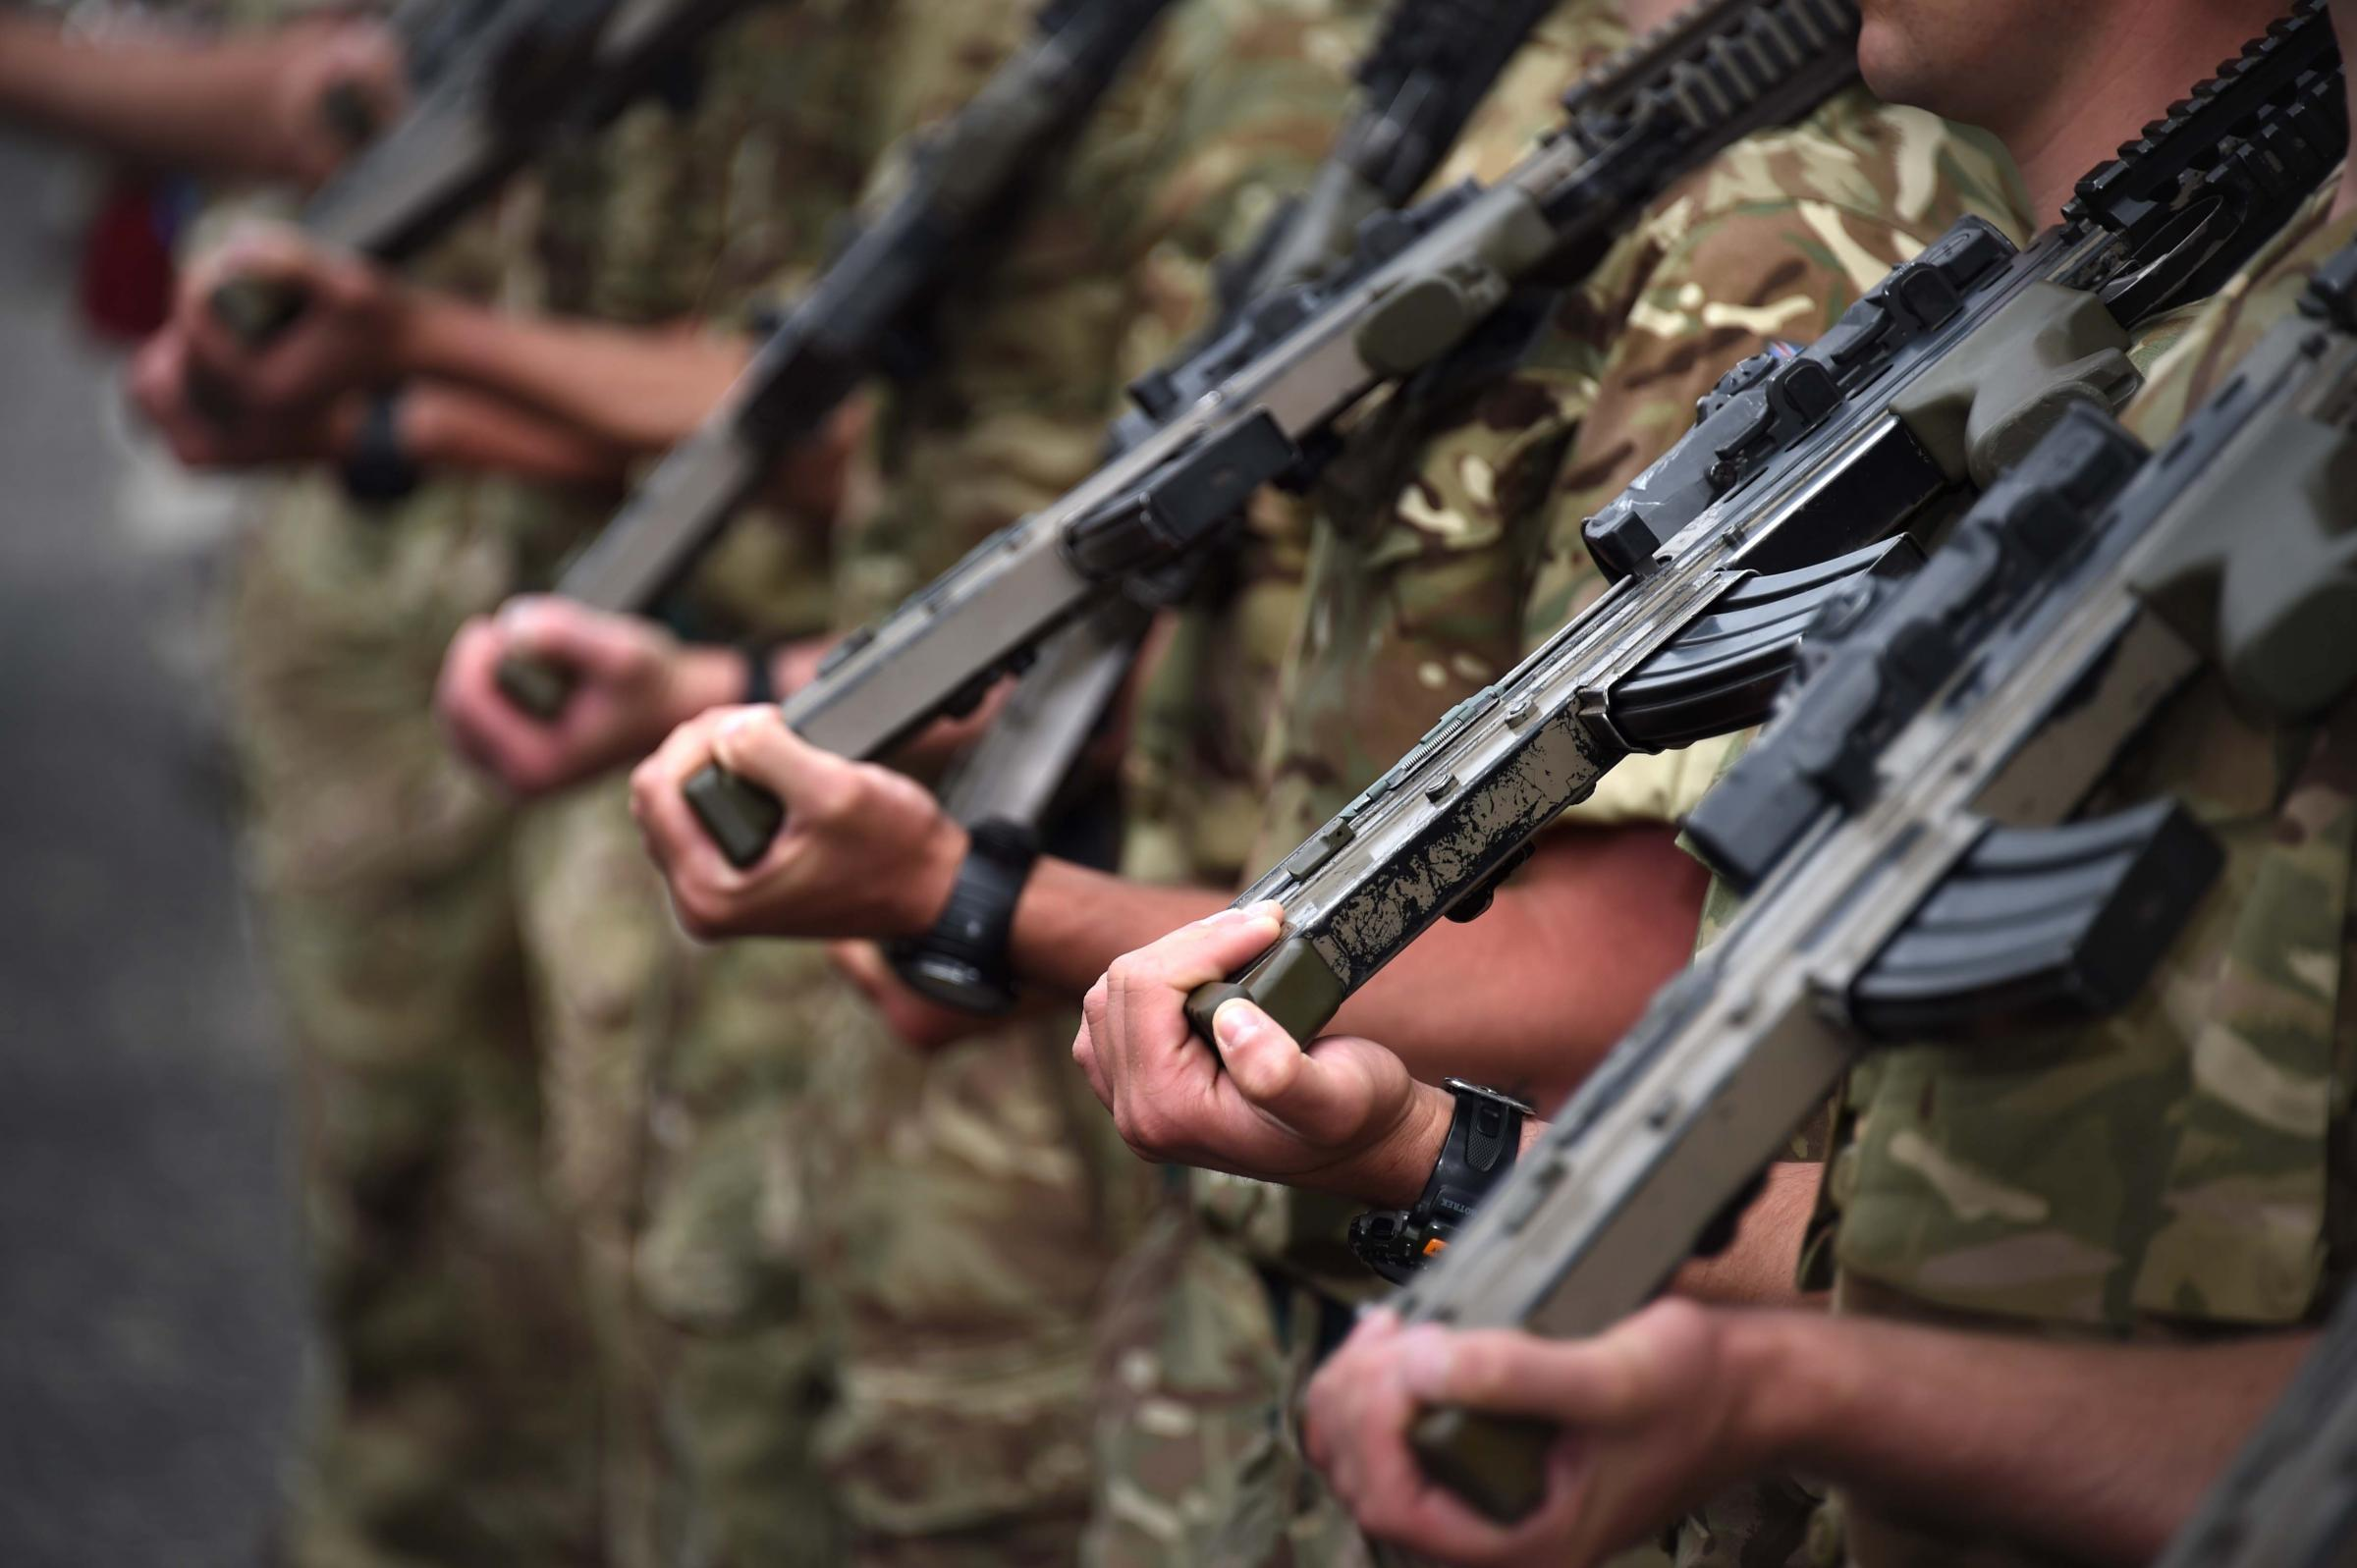 Armed forces personnel in Scotland and England are in different financial circumstances